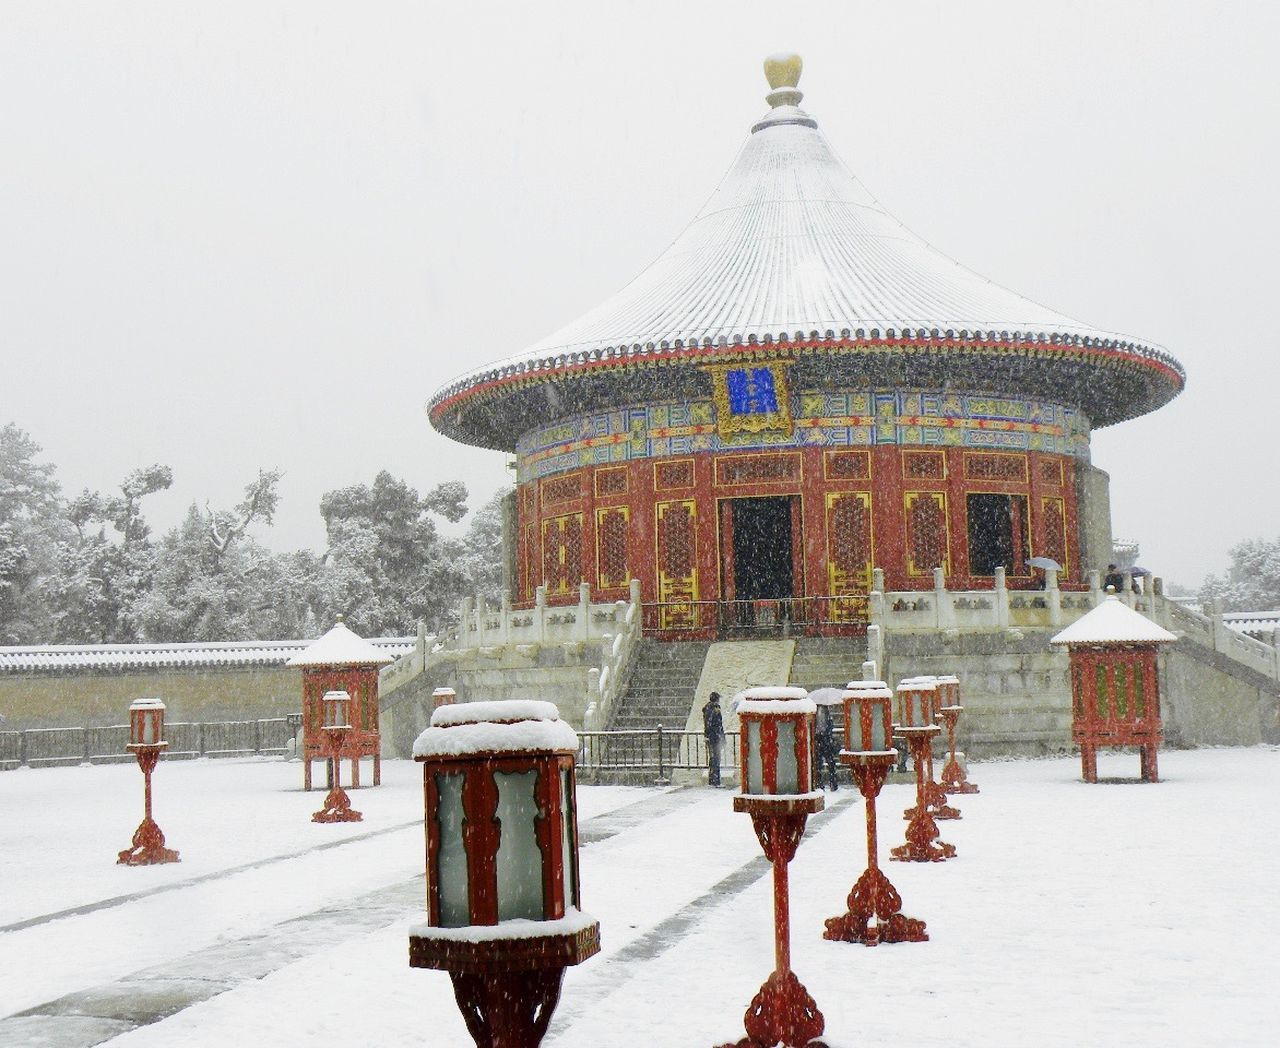 Architecture Beijing Beijing China Beijing Scenes BEIJING 北京 Beijing, China BEIJING北京CHINA中国BEAUTY Building Exterior Built Structure Clear Sky Cold Temperature Day Nature Outdoors Pechino Real People Sky Snow The Forbidden City  The Forbidden City Beijing Winter